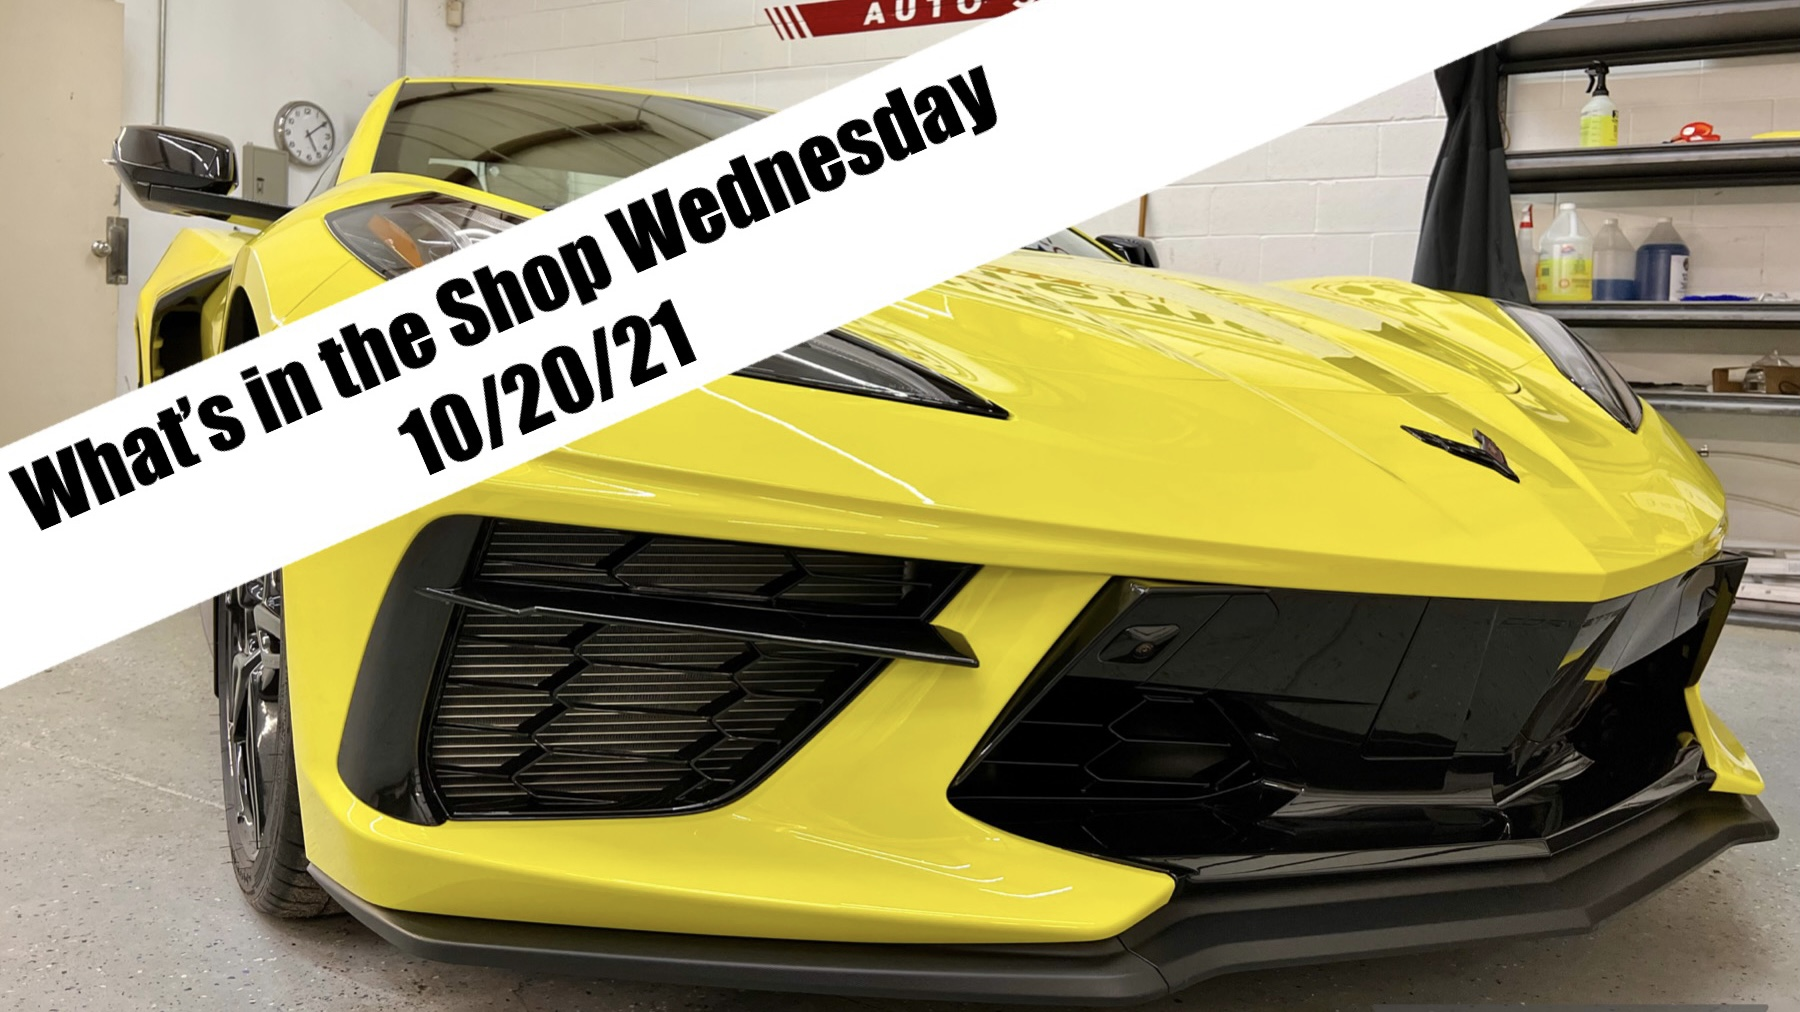 What's in the Shop Wednesday 10/20/21